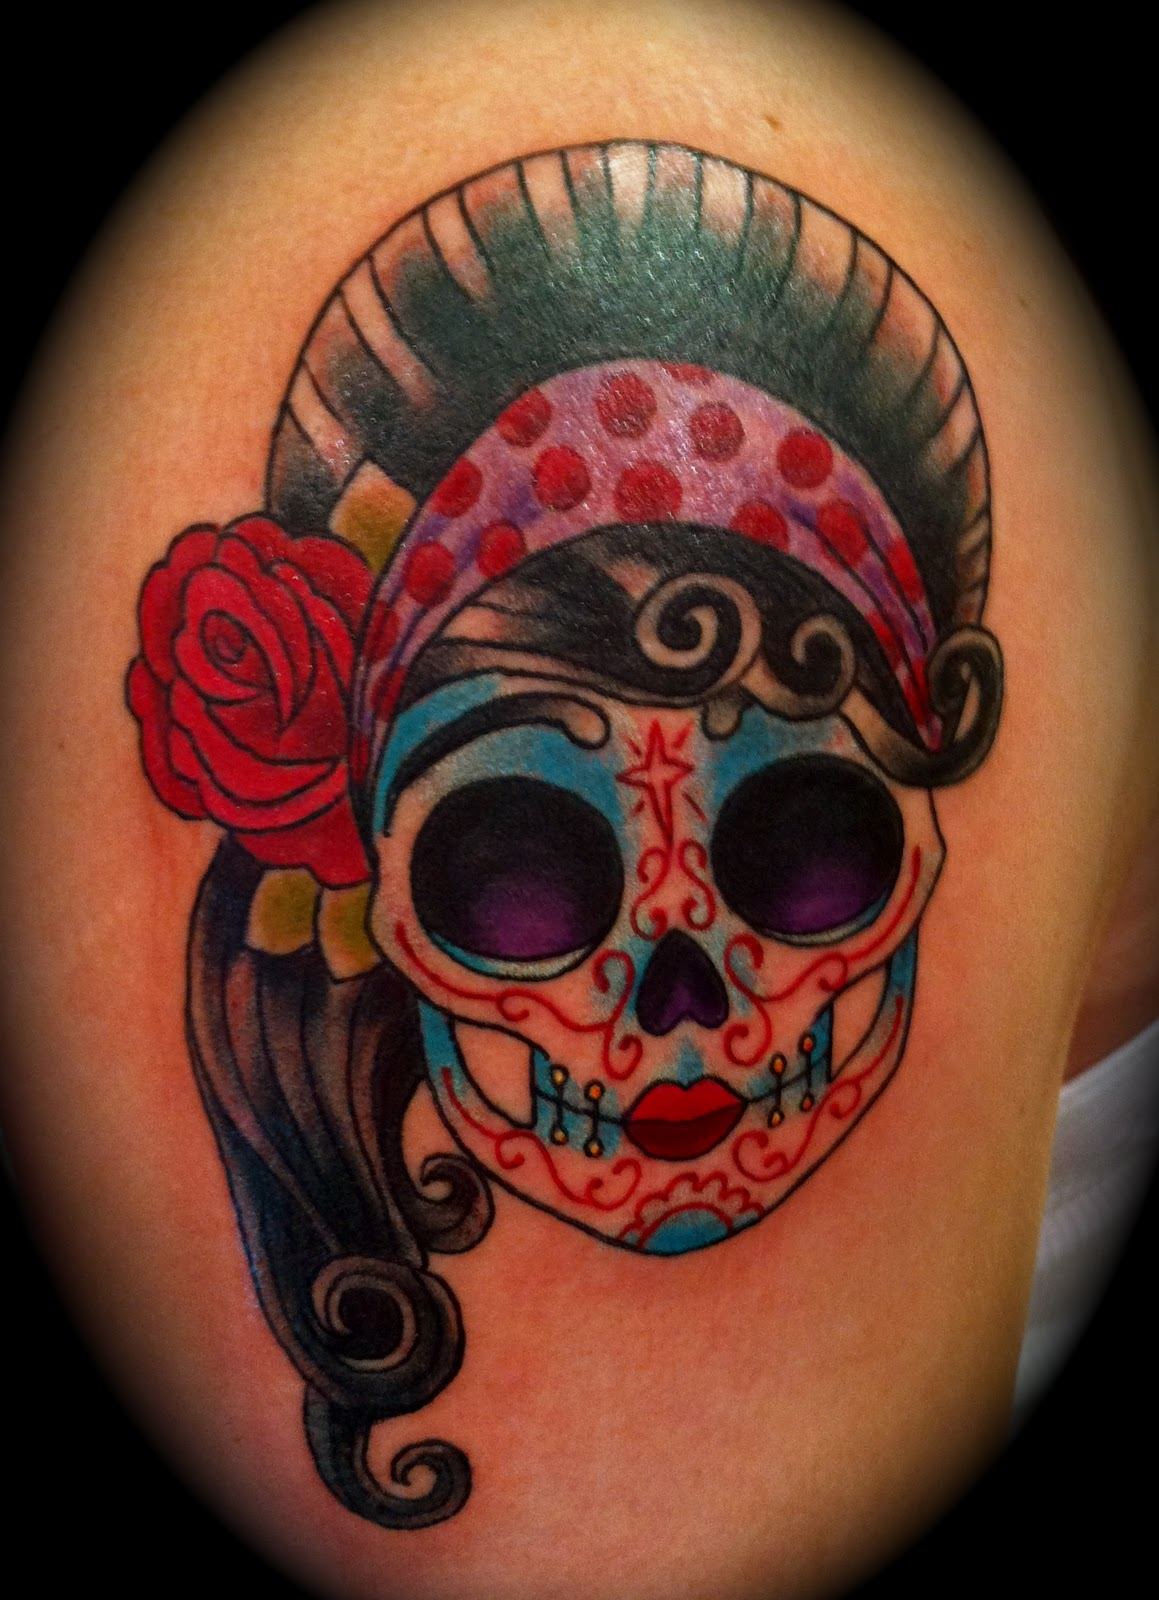 afrenchieforyourthoughts: skulls tattoos have meaning